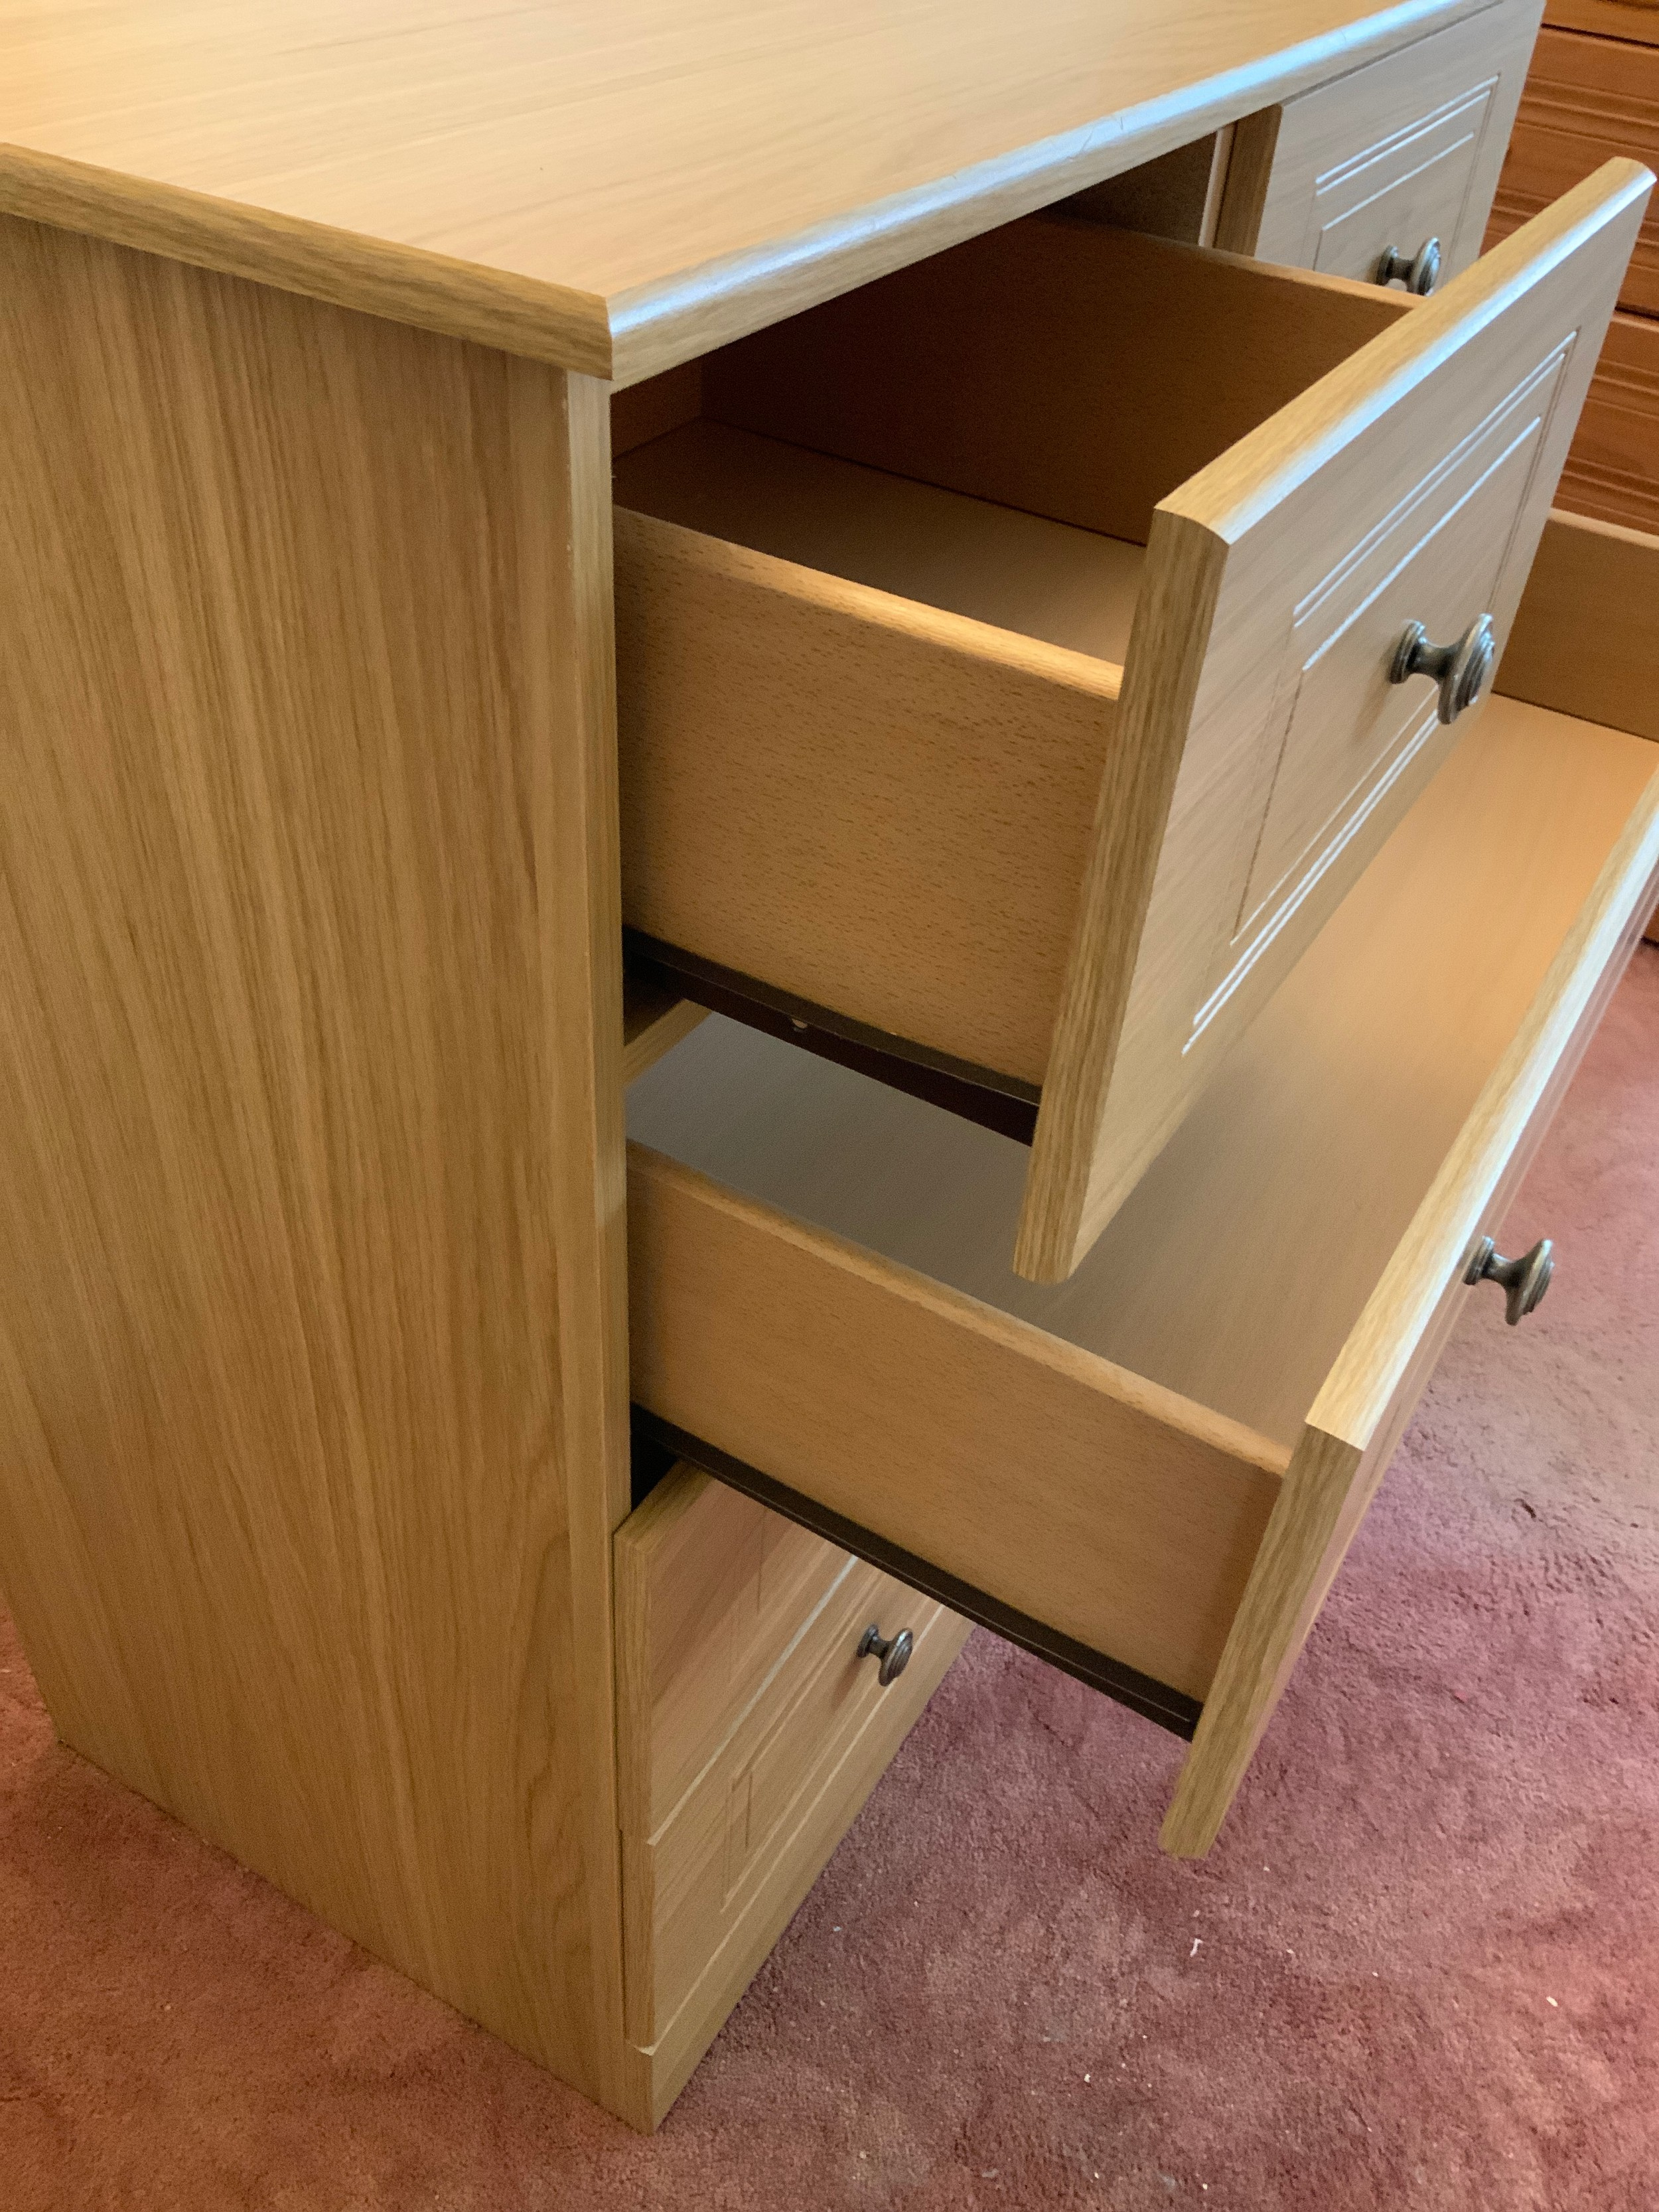 Chest of Two over Three Drawers - 83cm W x 45cm D x 94cm H - Image 2 of 2